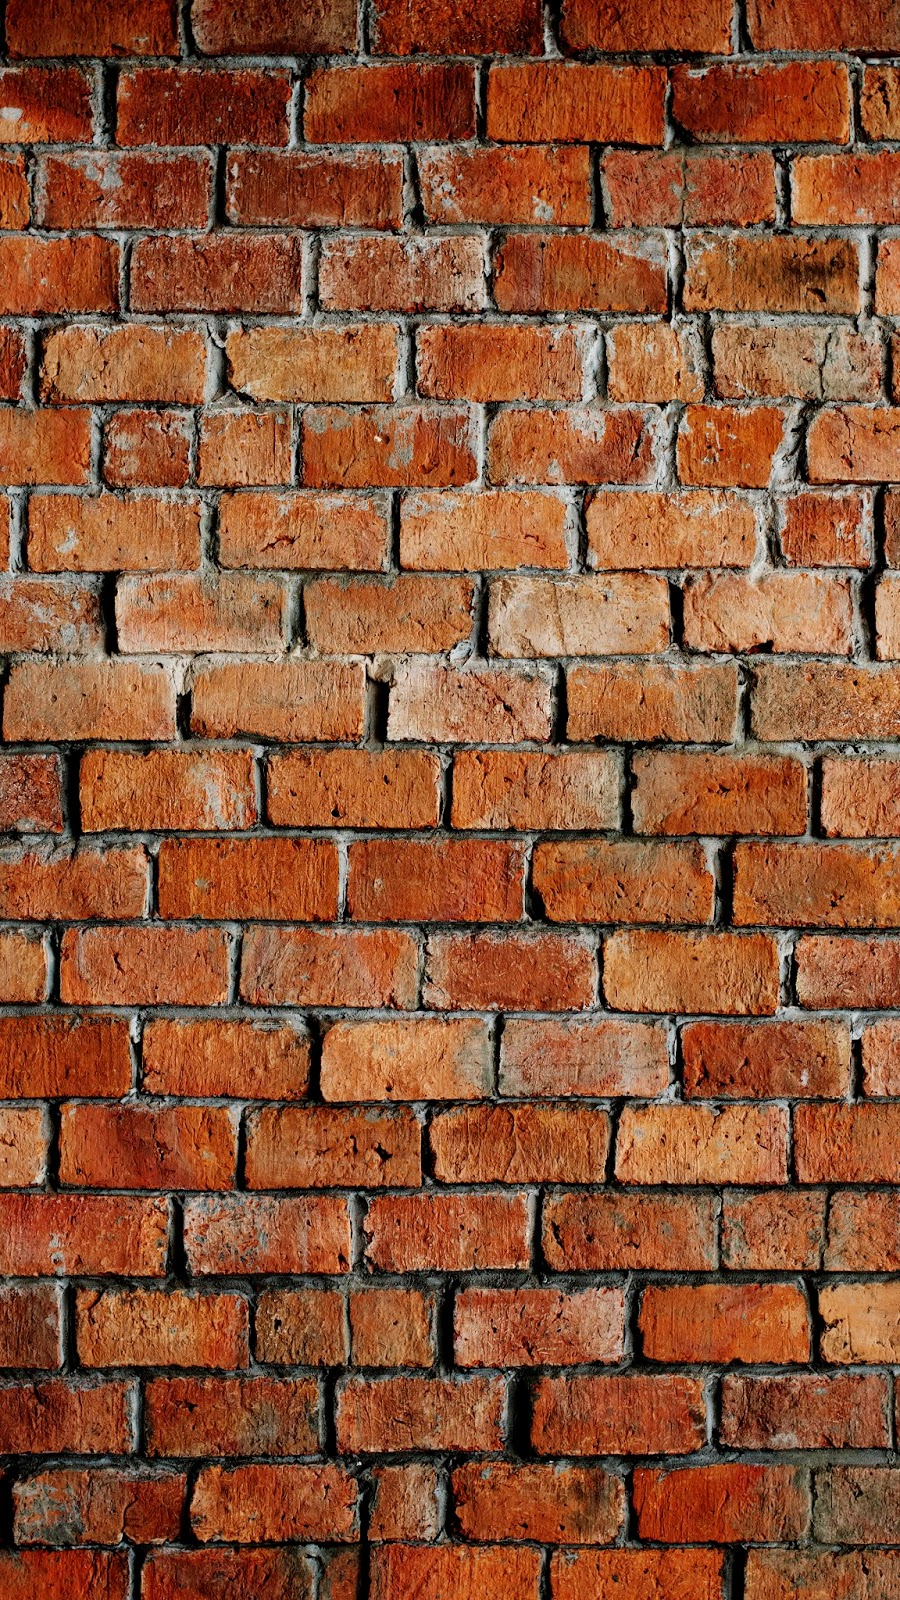 brick wall real photo in 4k ultra high resolution to use as phone wallpaper